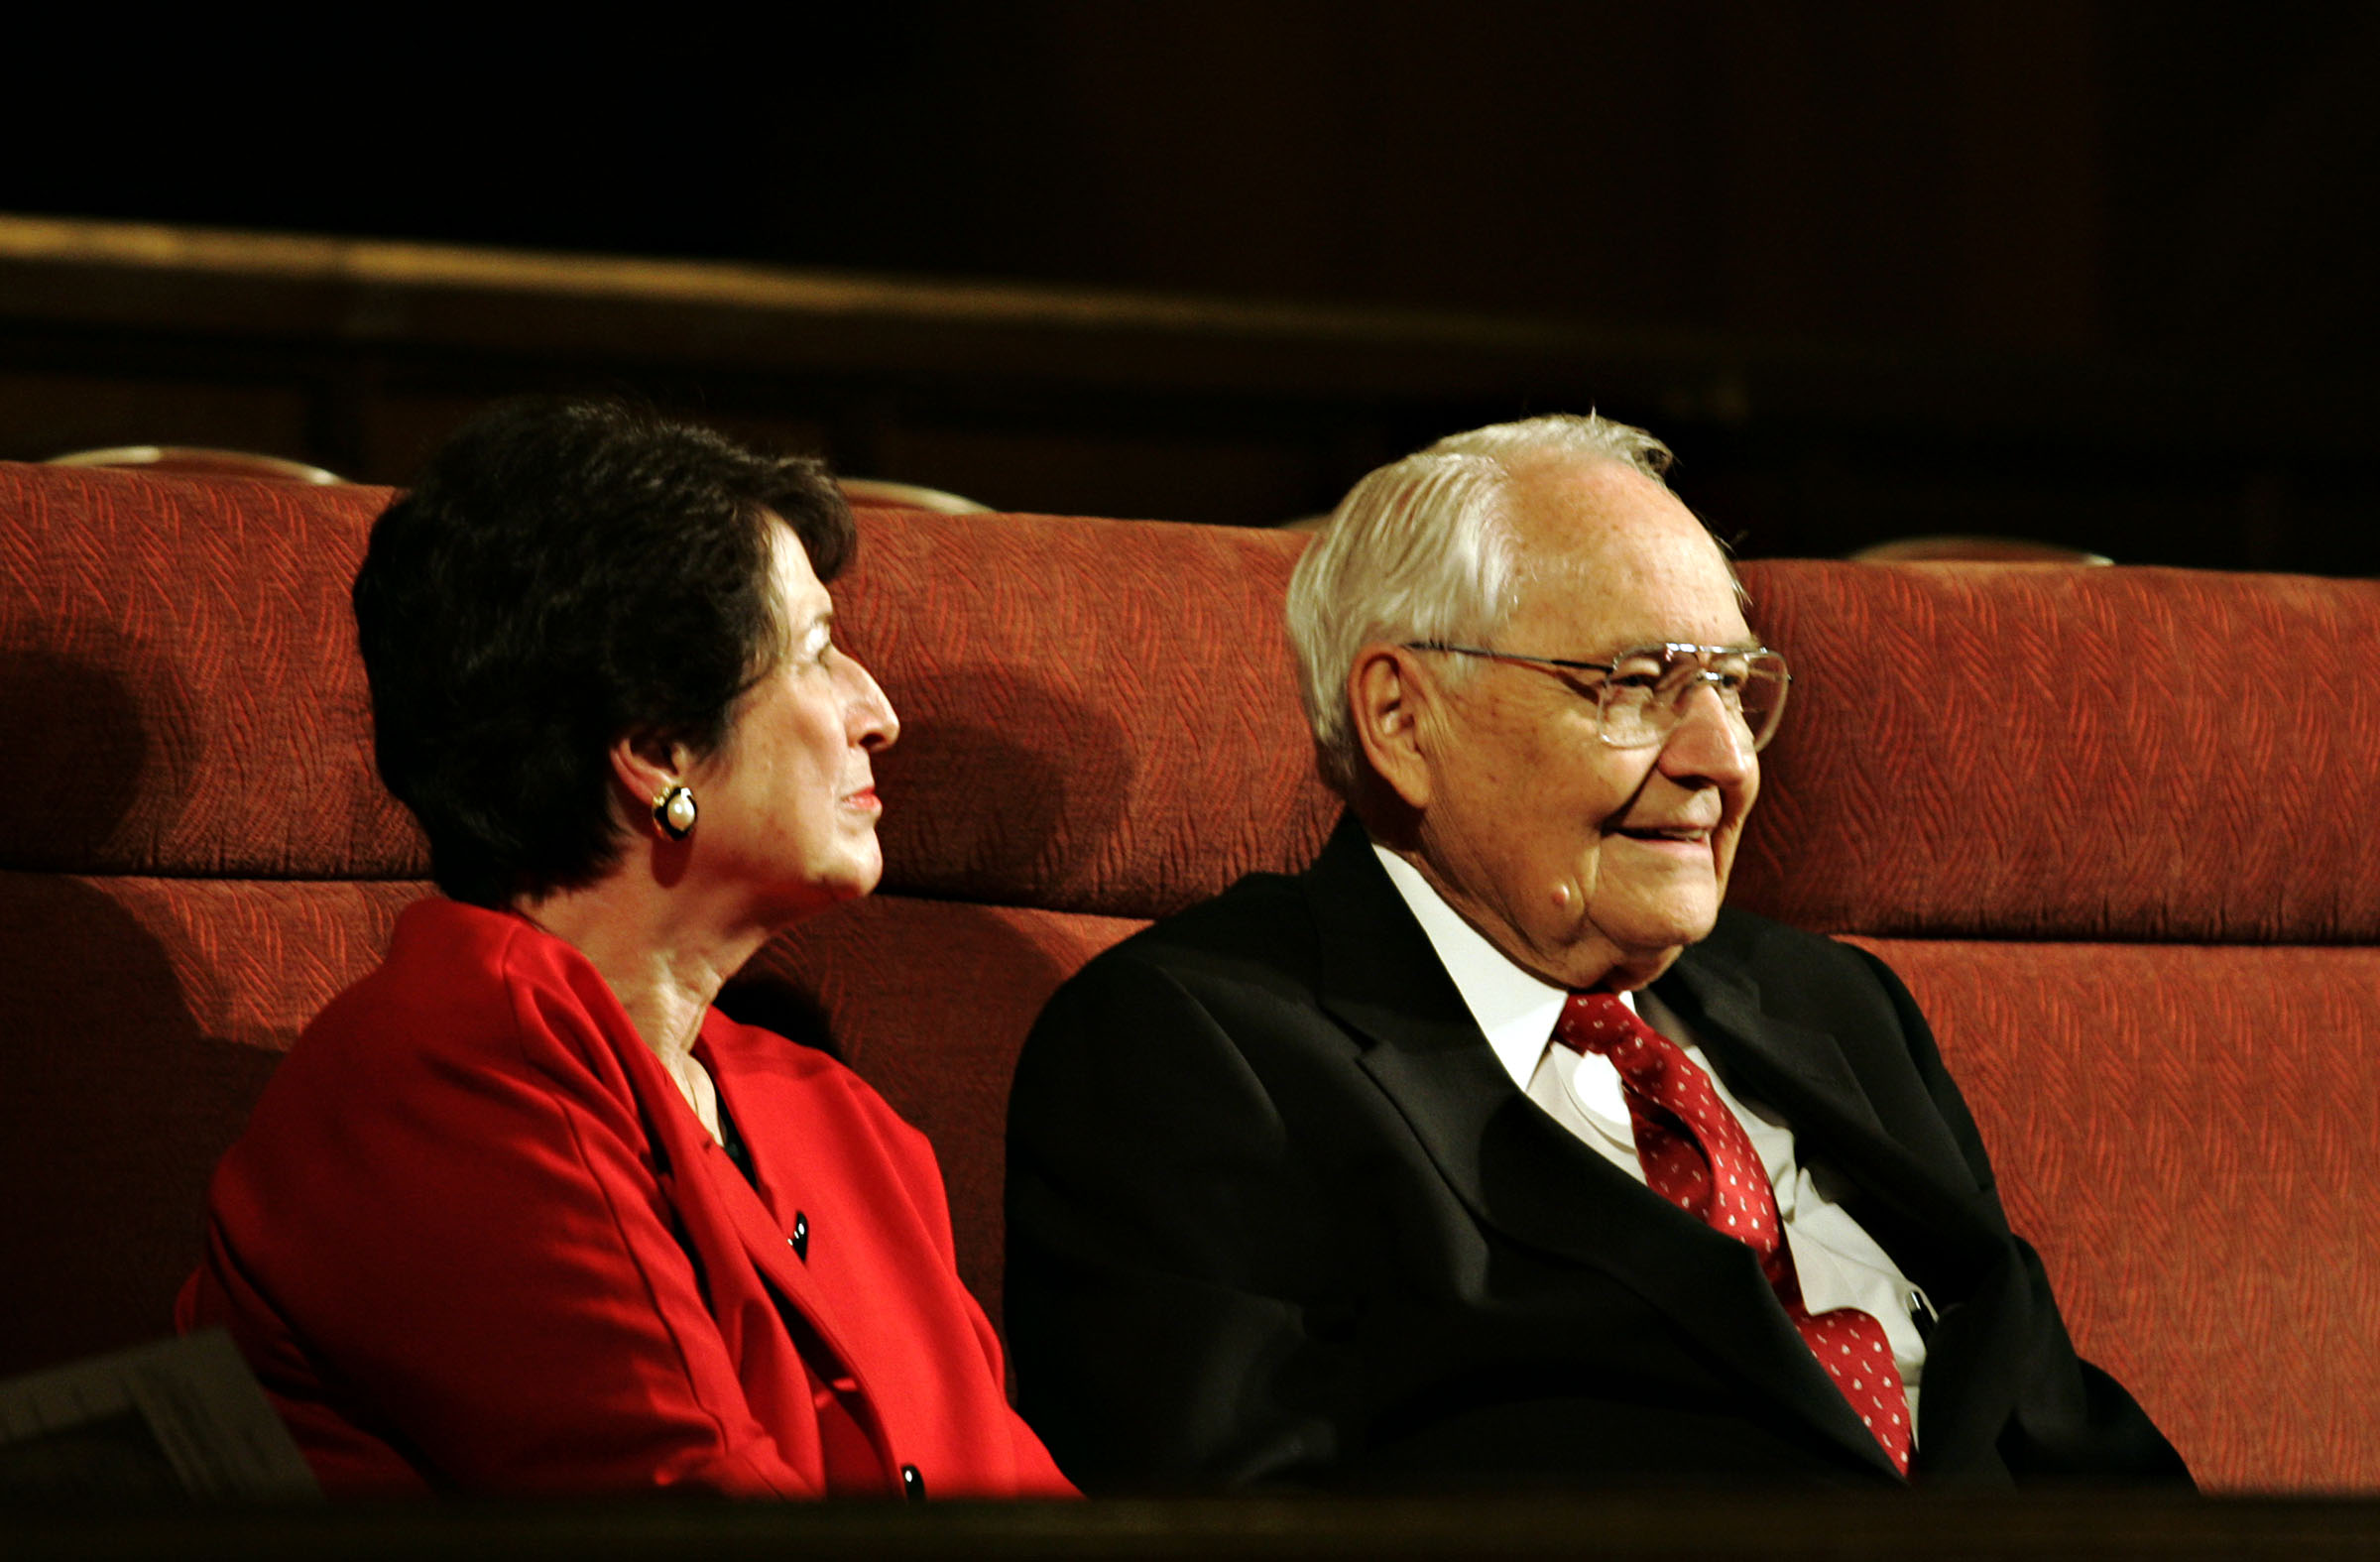 """Sister Barbara Perry and Elder L. Tom Perry of the Quorum of the Twelve Apostles listen to a string duet of """"O Divine Redeemer"""" during the 200th Birth Anniversary Commemoration of President John Taylor at the Assembly Hall on Temple Square in Salt Lake City on Thursday, November 6, 2008. Photo by Courtney Sargent, Deseret News"""